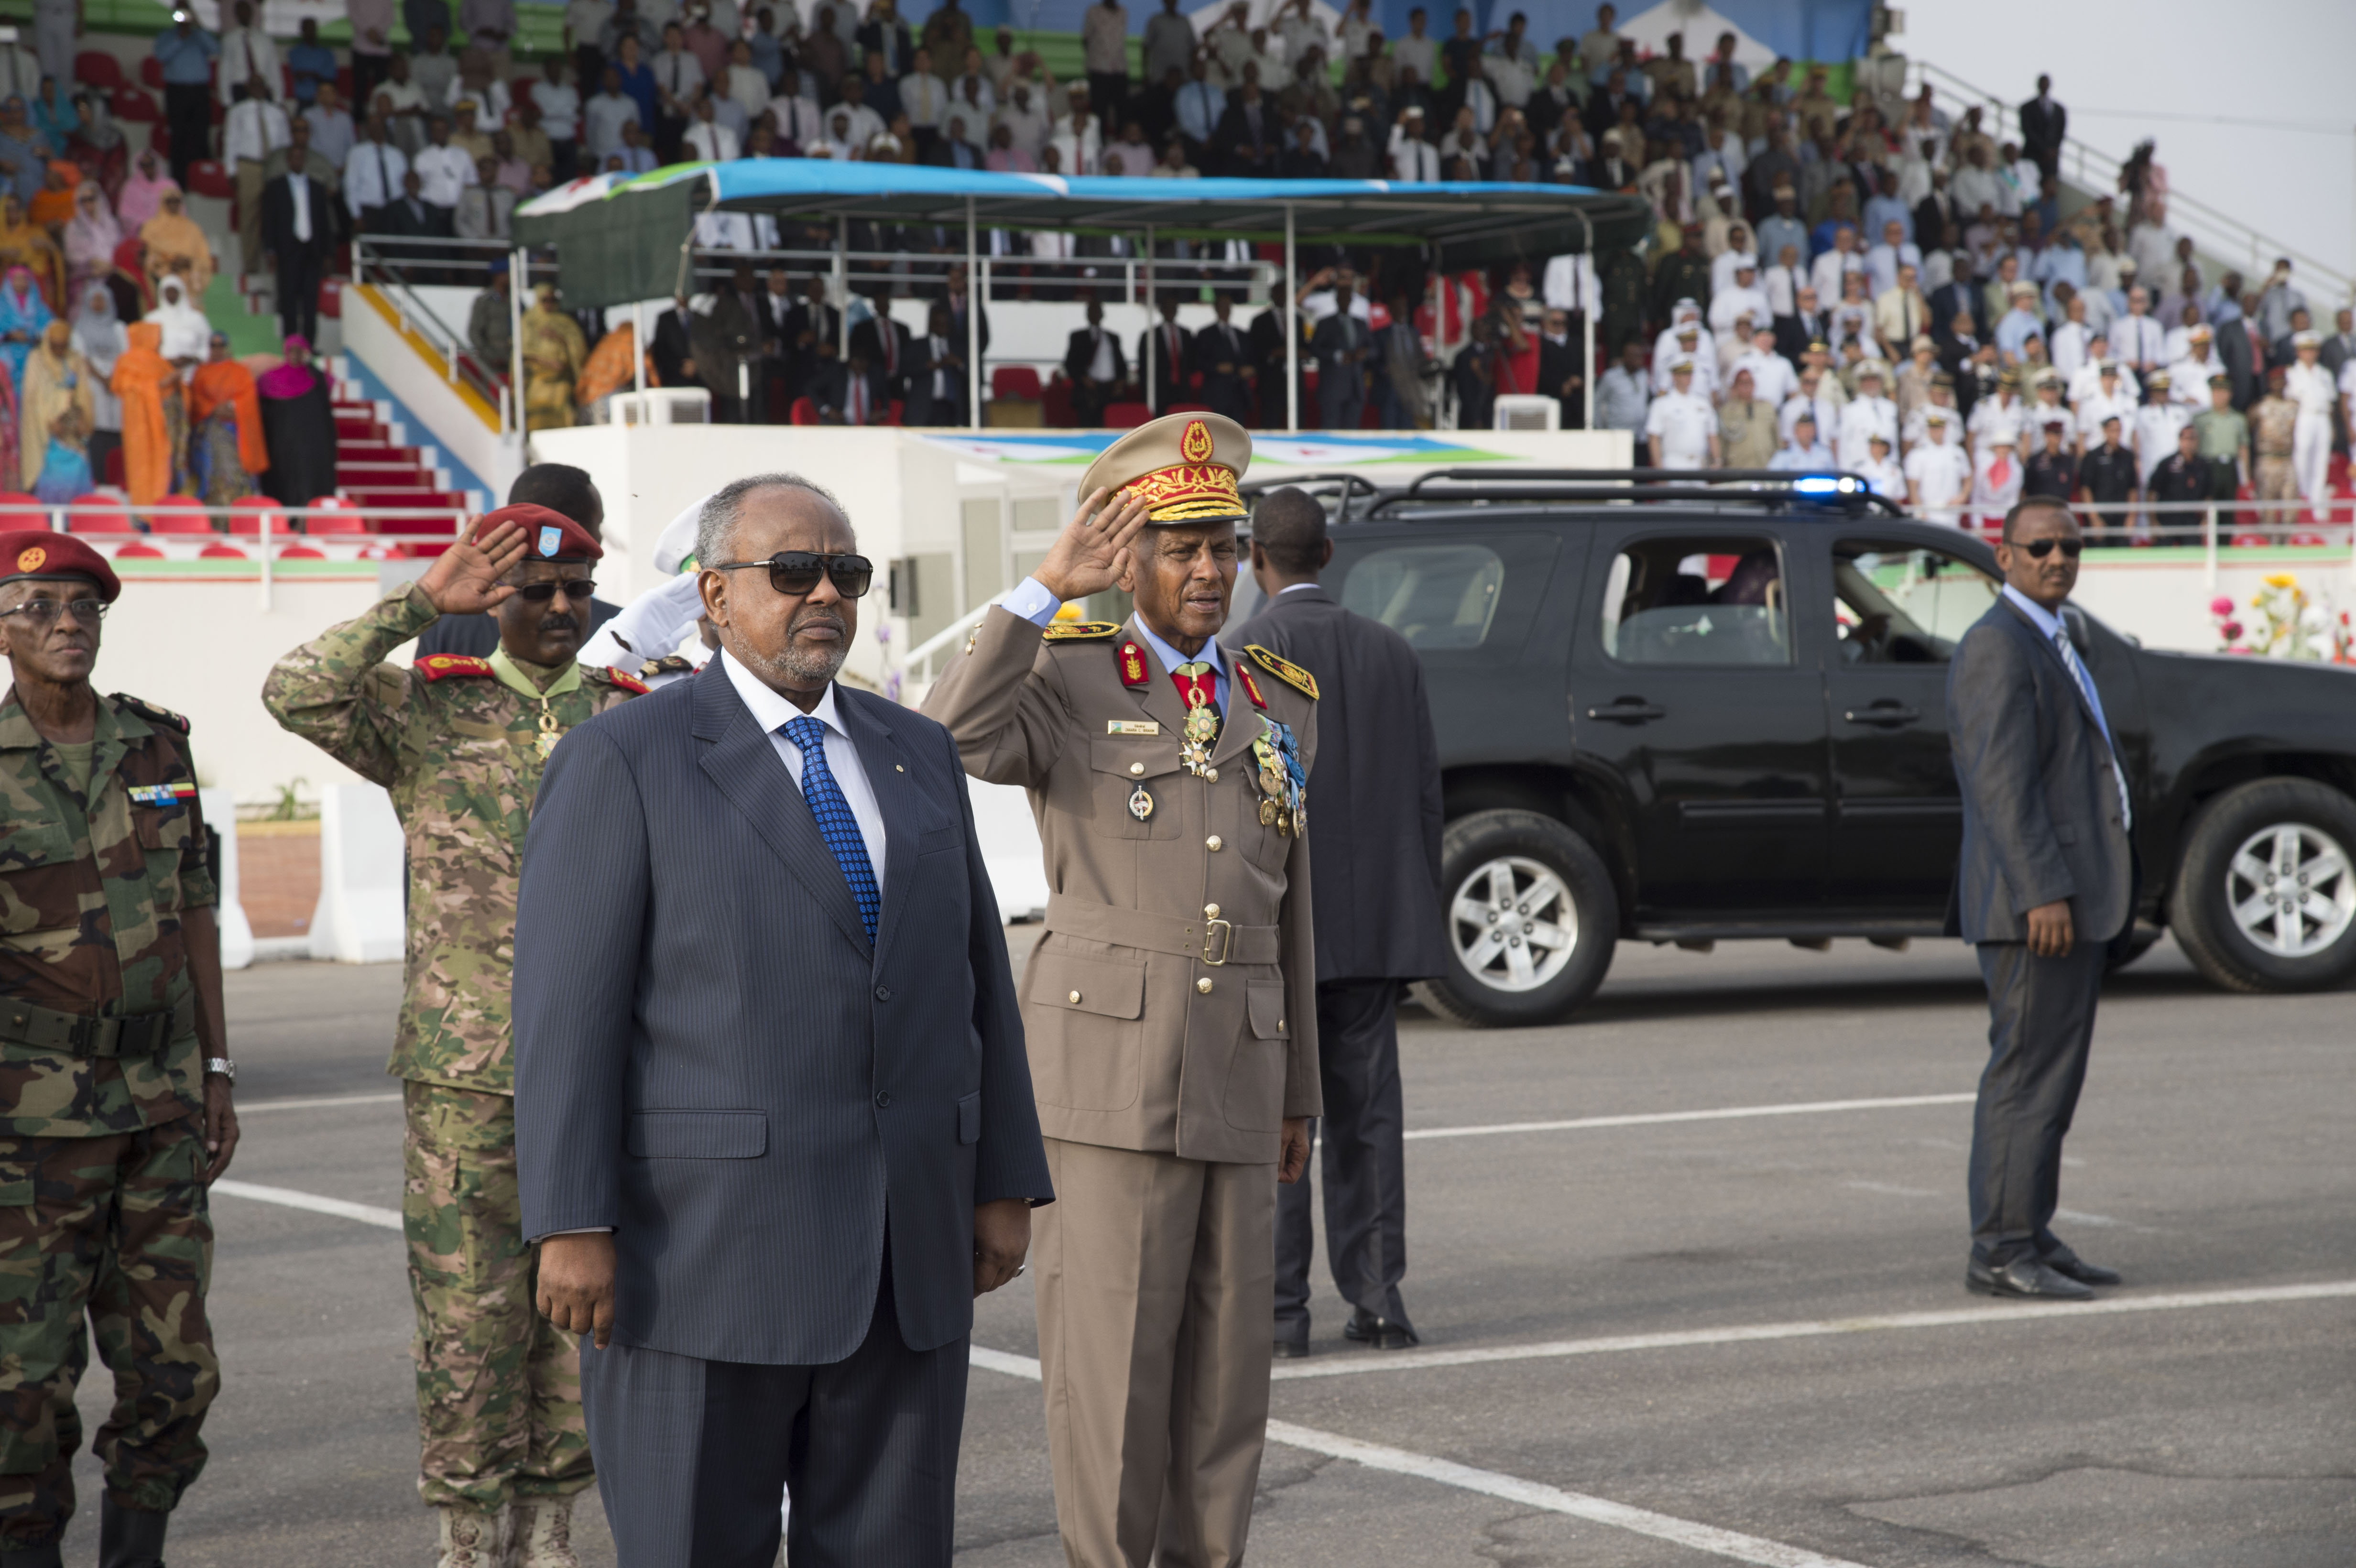 Djiboutian President Ismail Omar Guelleh stands in front of Djibouti's national flag during the playing of the country's national anthem June 27, 2016, at Djibouti. Today marked the 39th year since Djibouti declared its independence. (U.S. Air Force photo by Staff Sgt. Eric Summers Jr.)